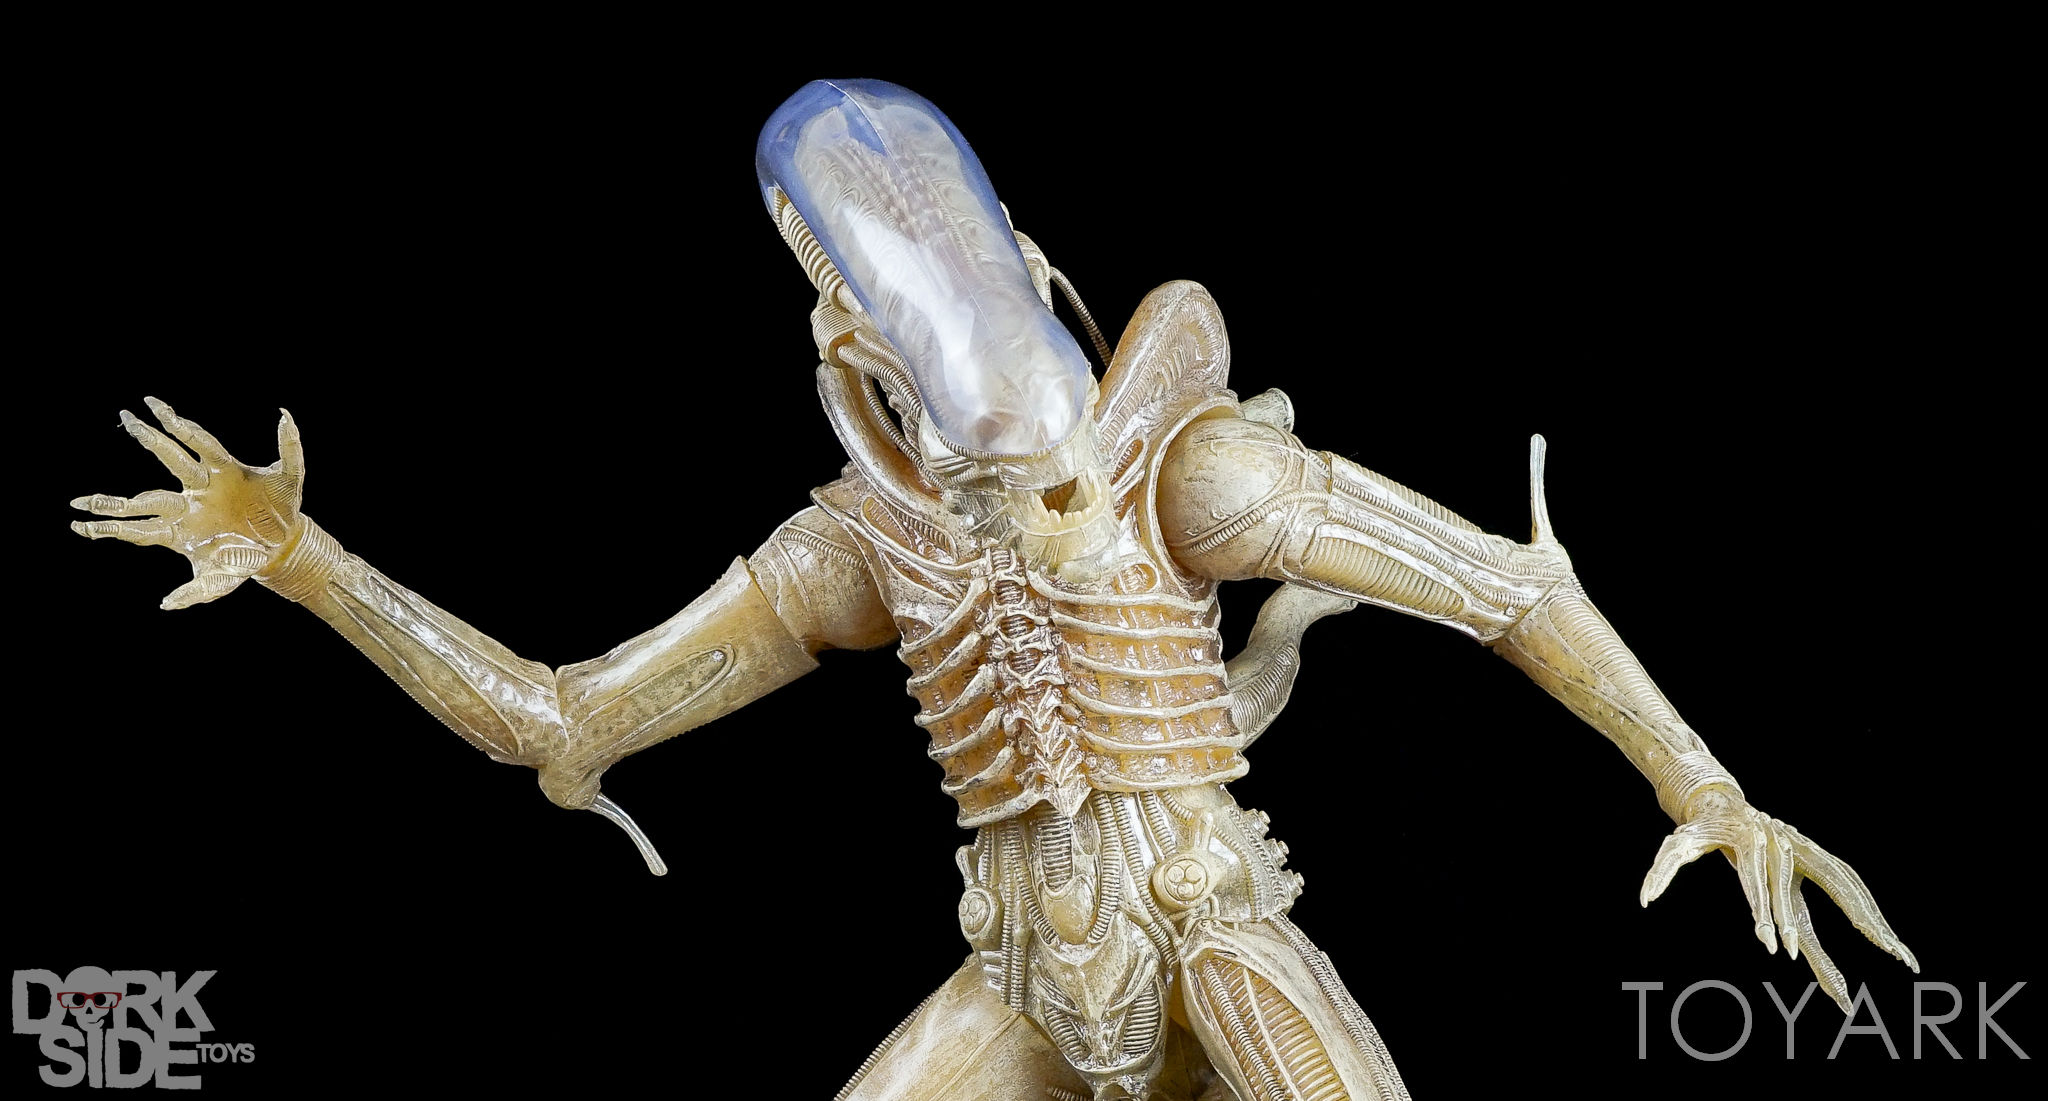 http://news.toyark.com/wp-content/uploads/sites/4/2016/10/NECA-Quarter-Scale-Concept-Alien-035.jpg